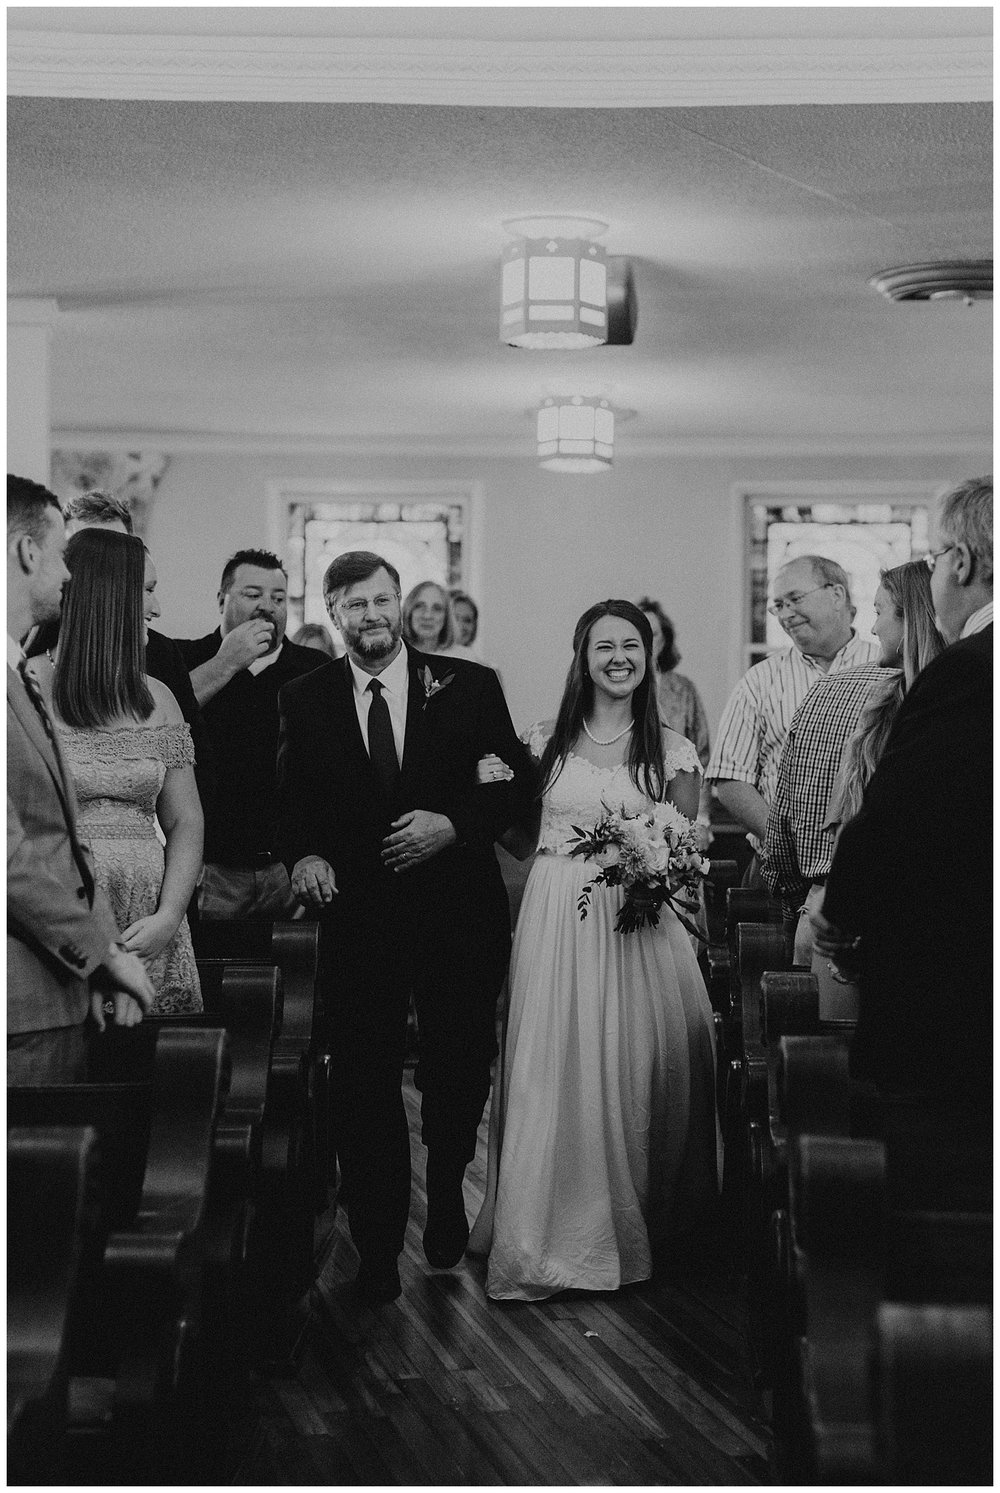 Madalynn Young Photography | Sarah Catherine + Will | Bridge Street Gallery and Loft | Atlanta Wedding Photographer_0371.jpg